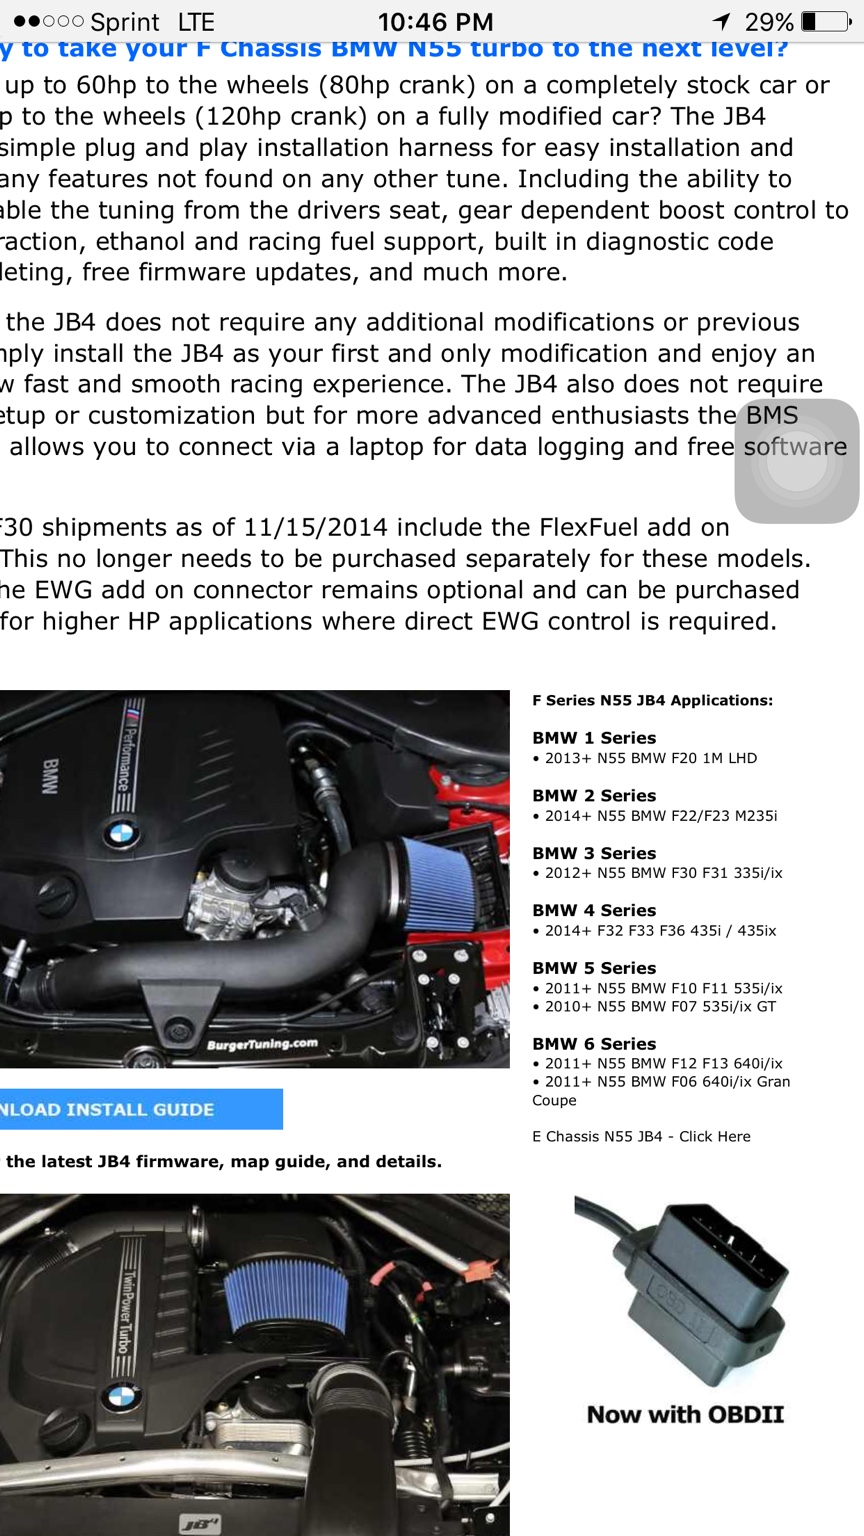 Stage 2 JB4 $450 (compatibility for vehicle is listed on